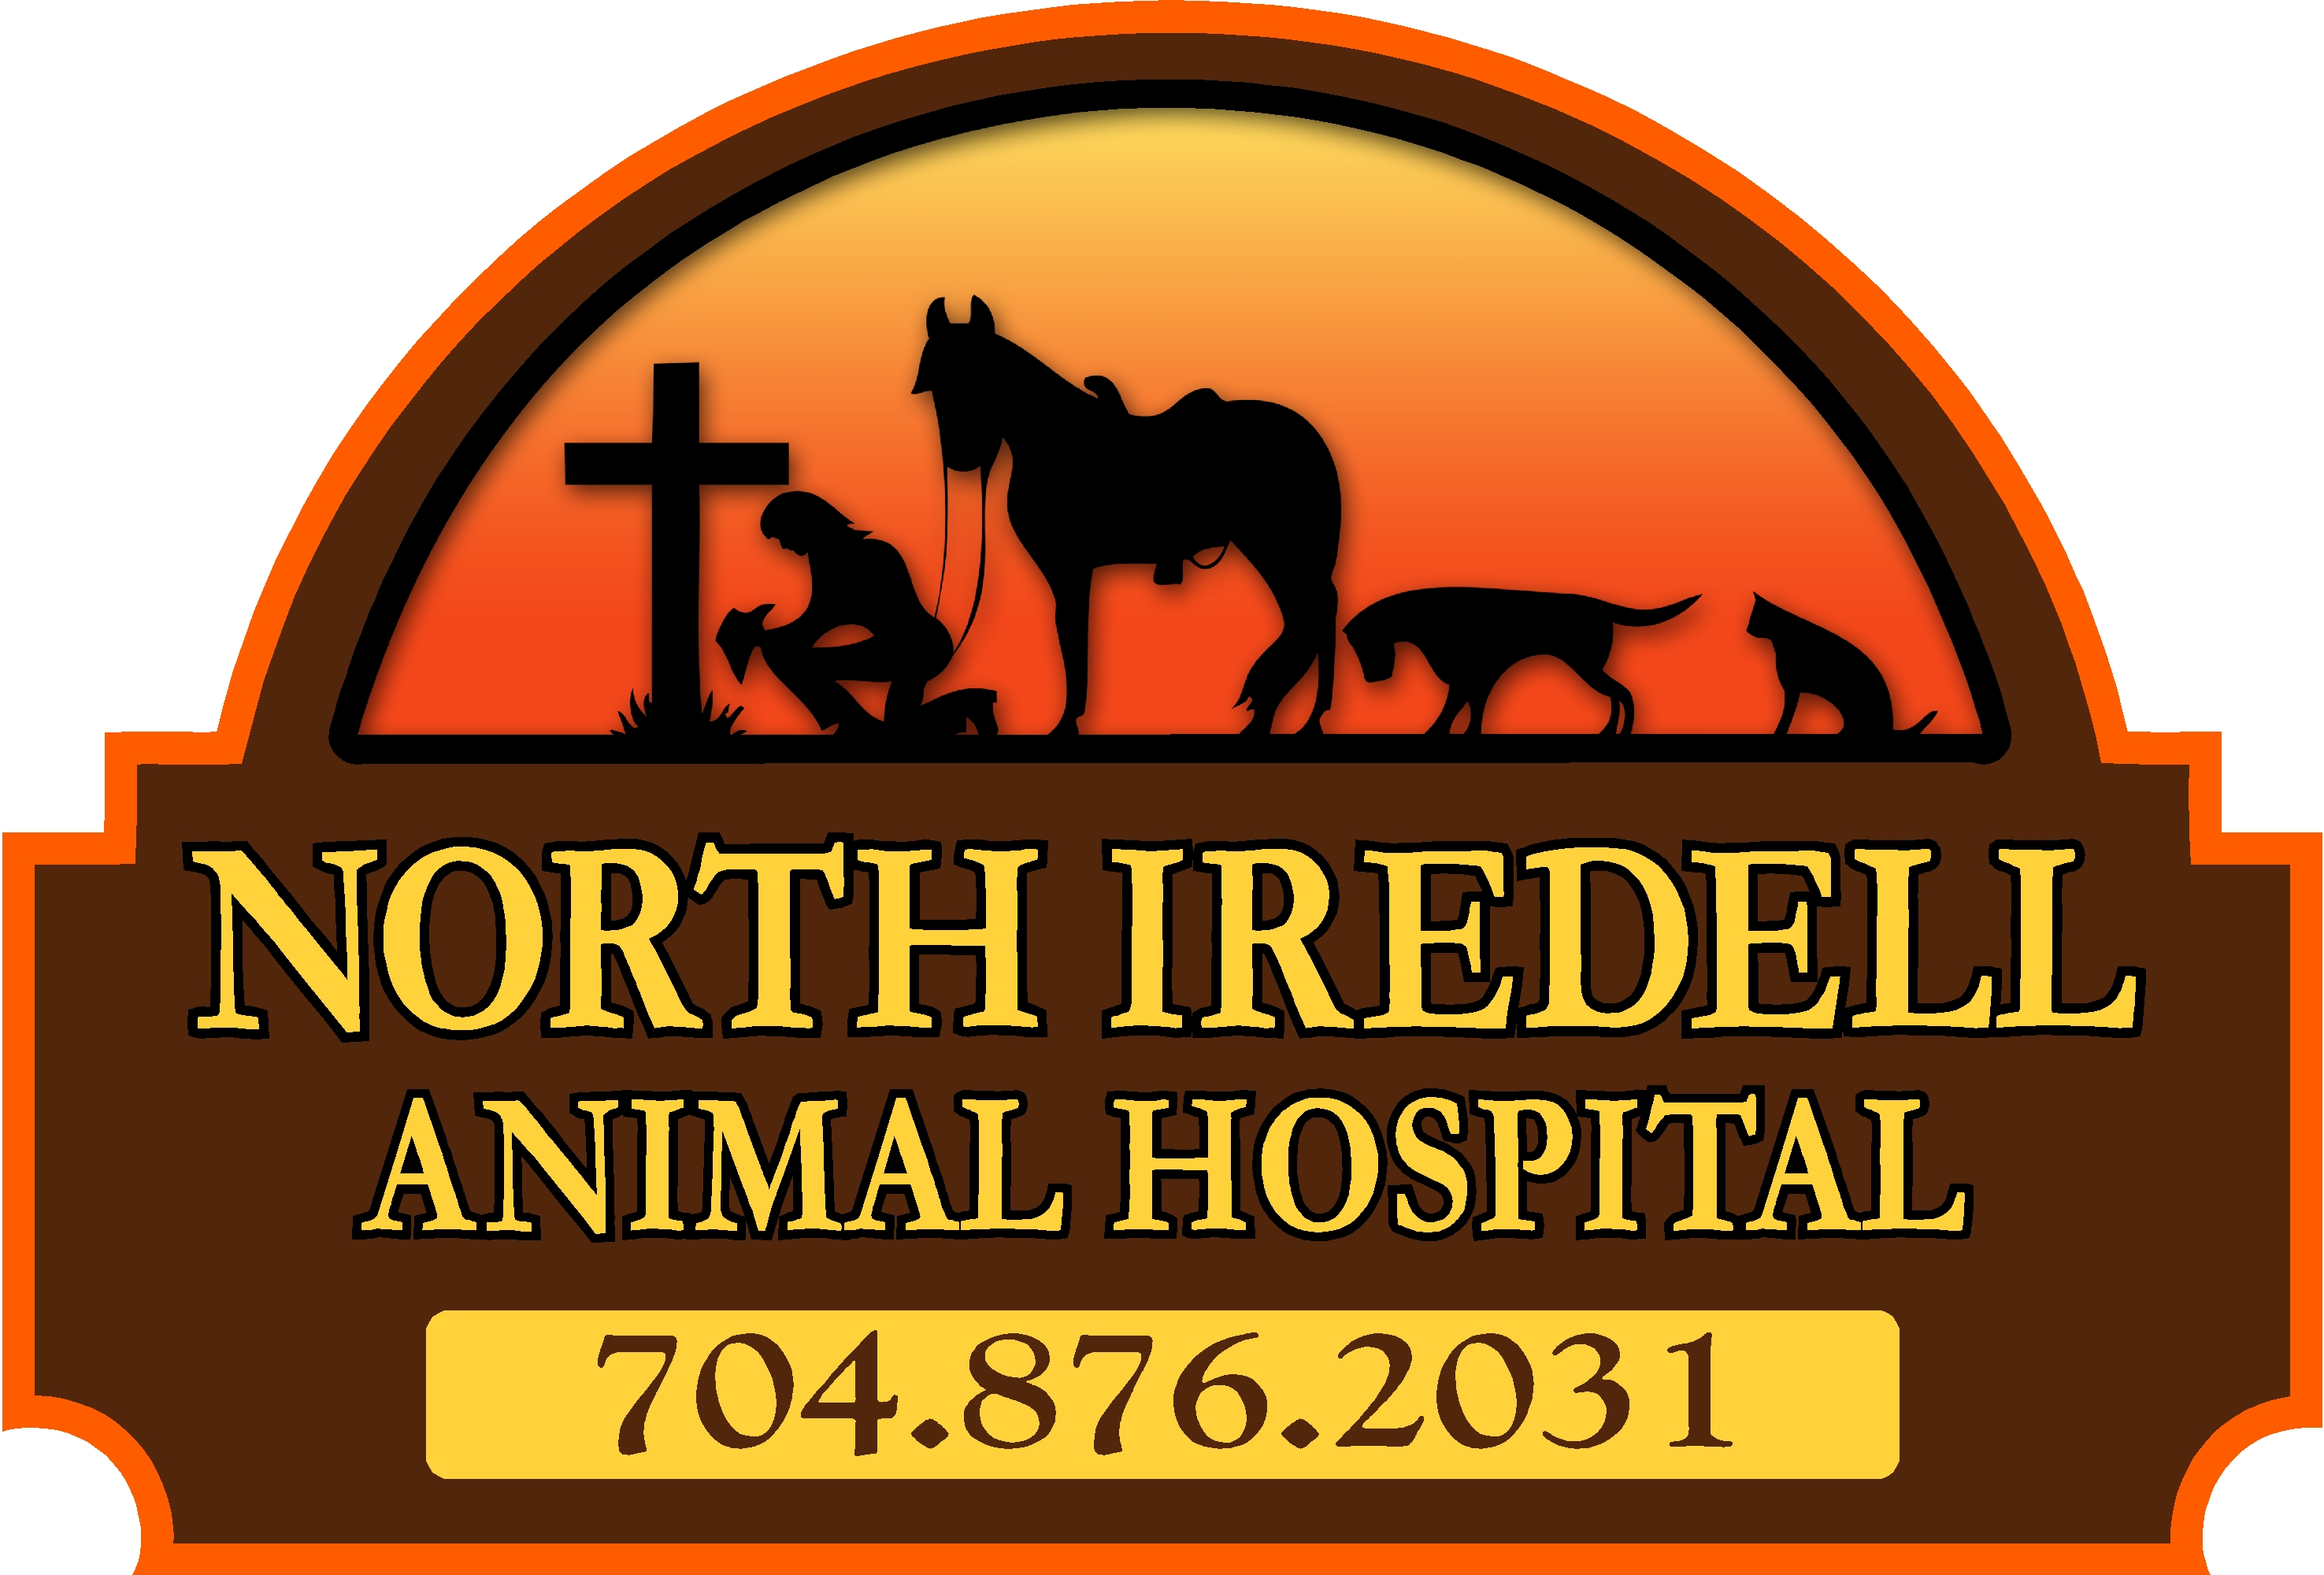 North Iredell Animal Hospital, PLLC Photo